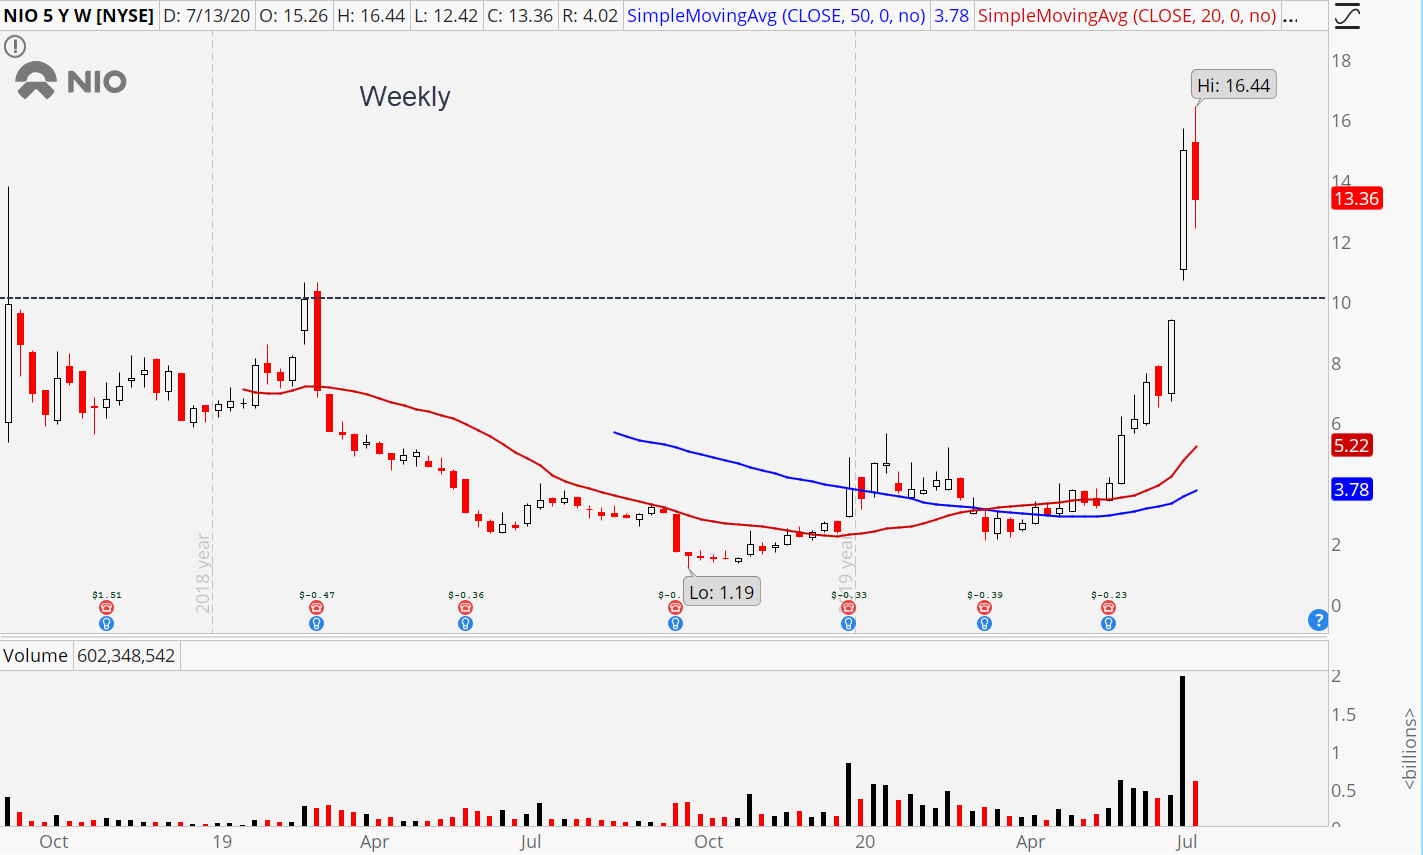 NIO (NIO) weekly stock chart showing $10 breakout level